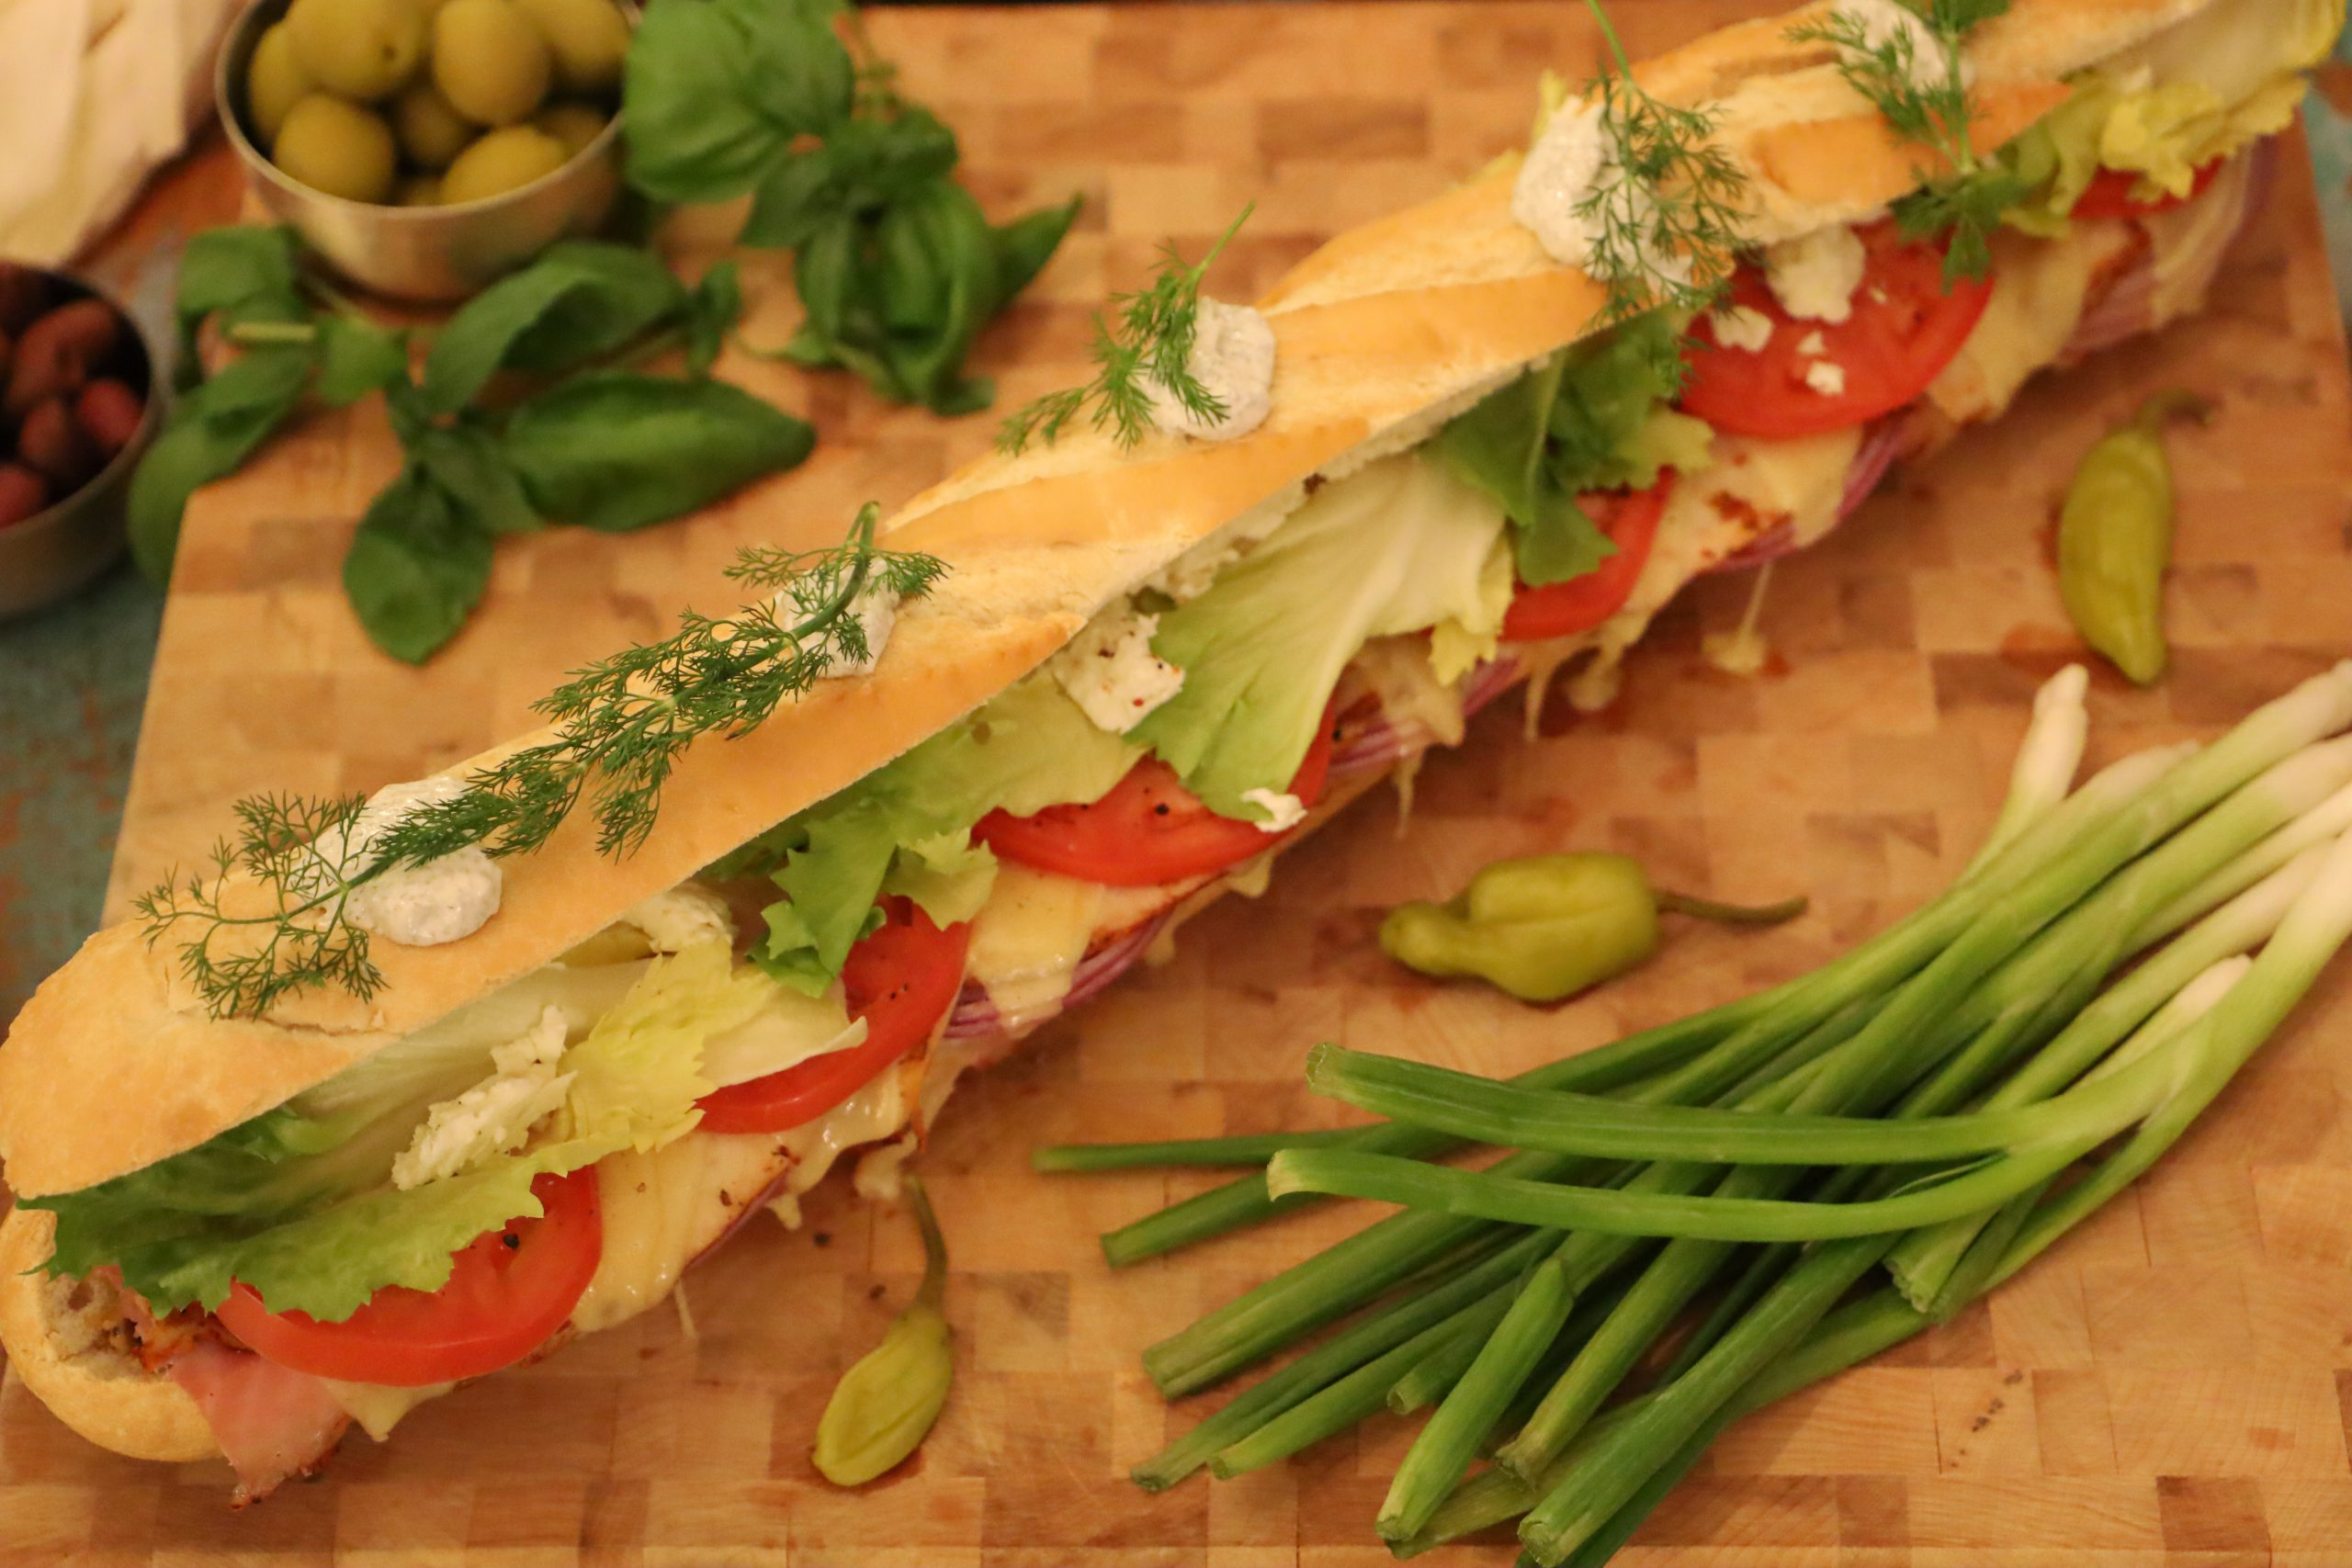 Sandwiches:  Between the Slices